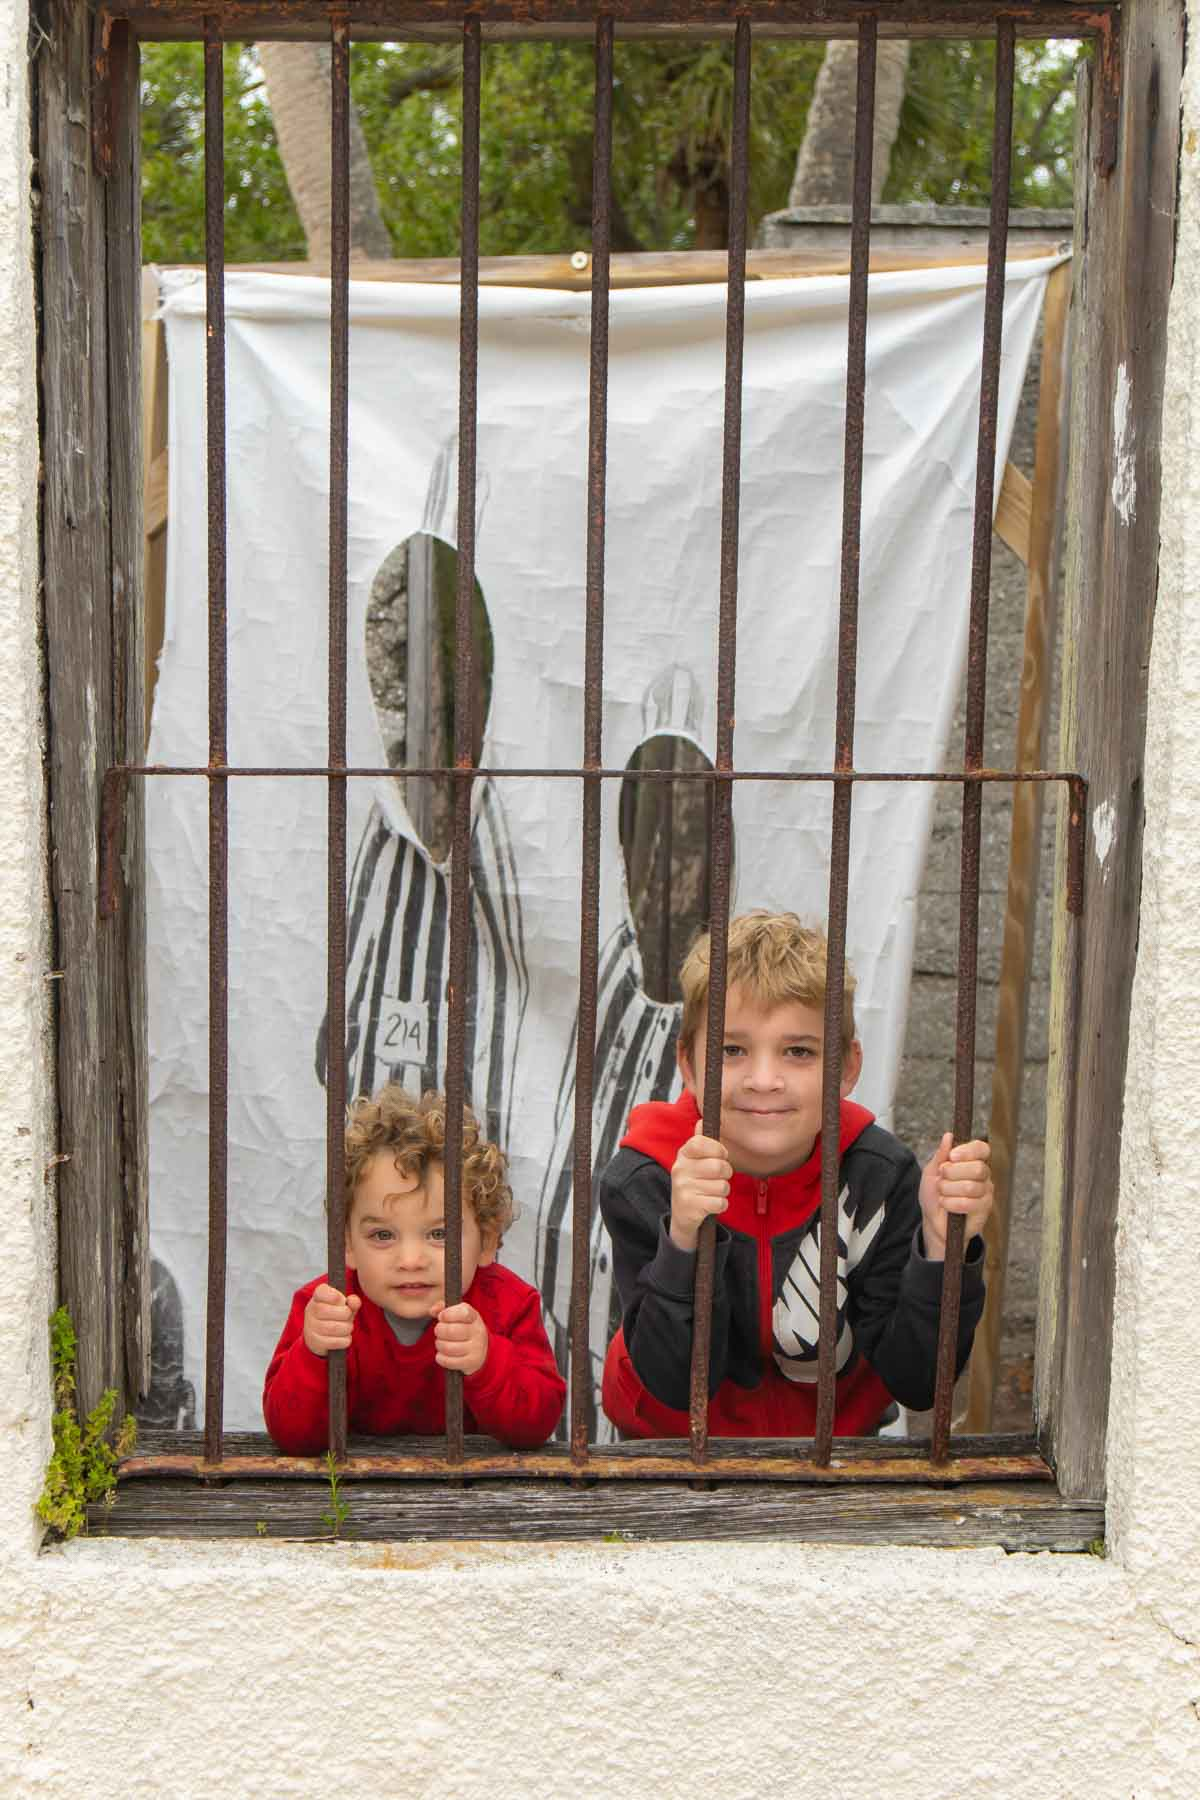 two boys behind bars